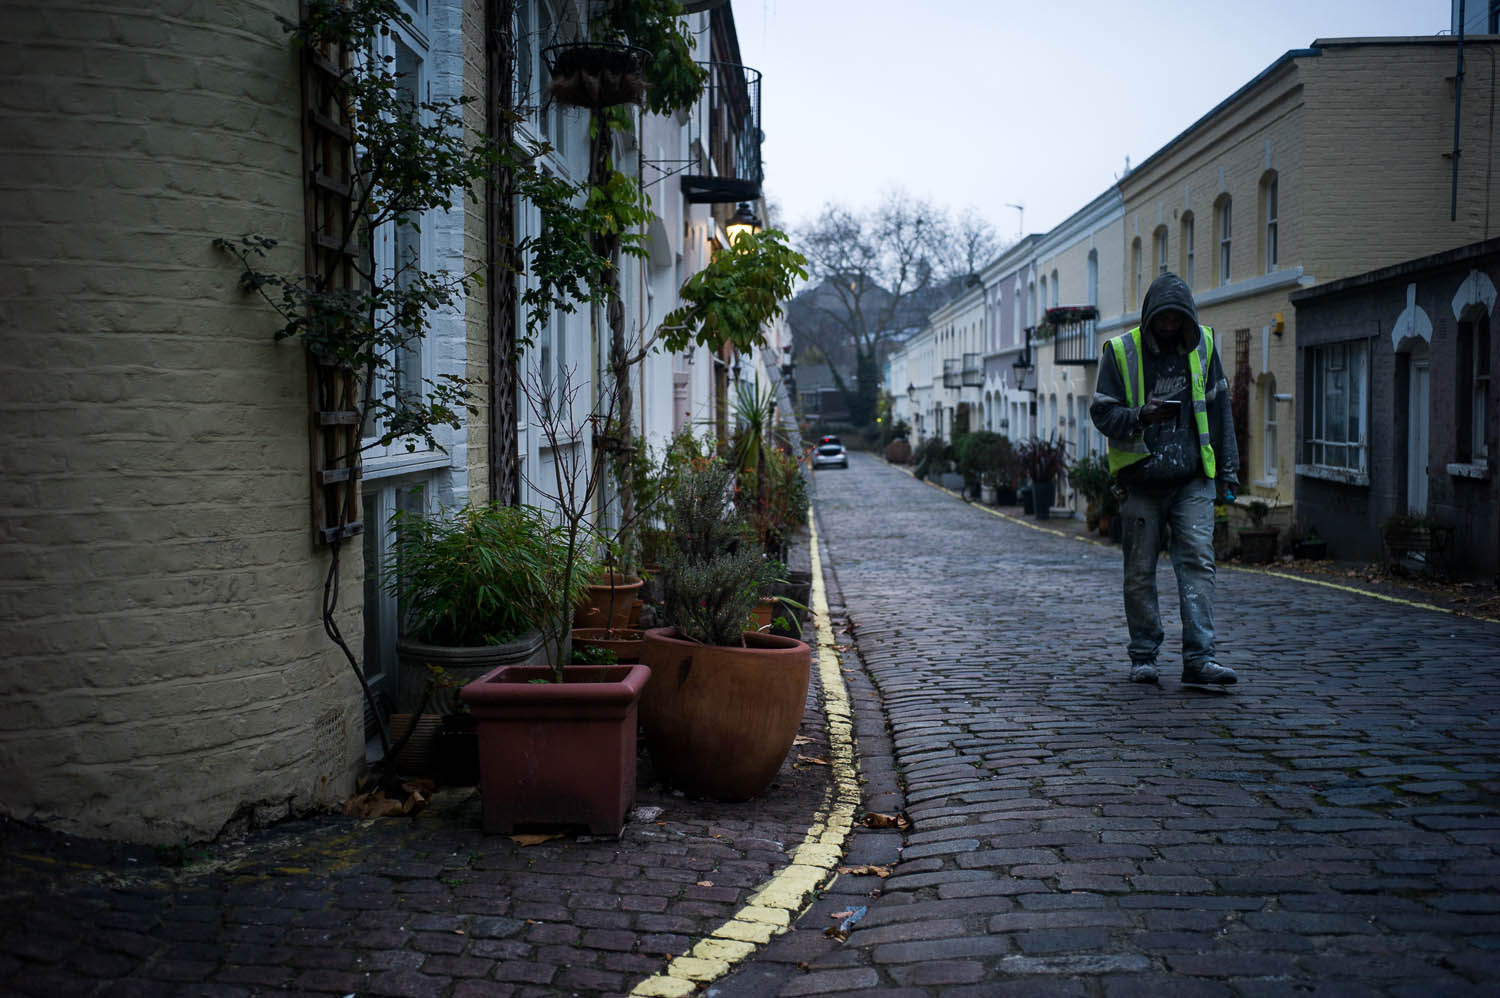 A worker in a reflective vest walks through a cobblestone street in London